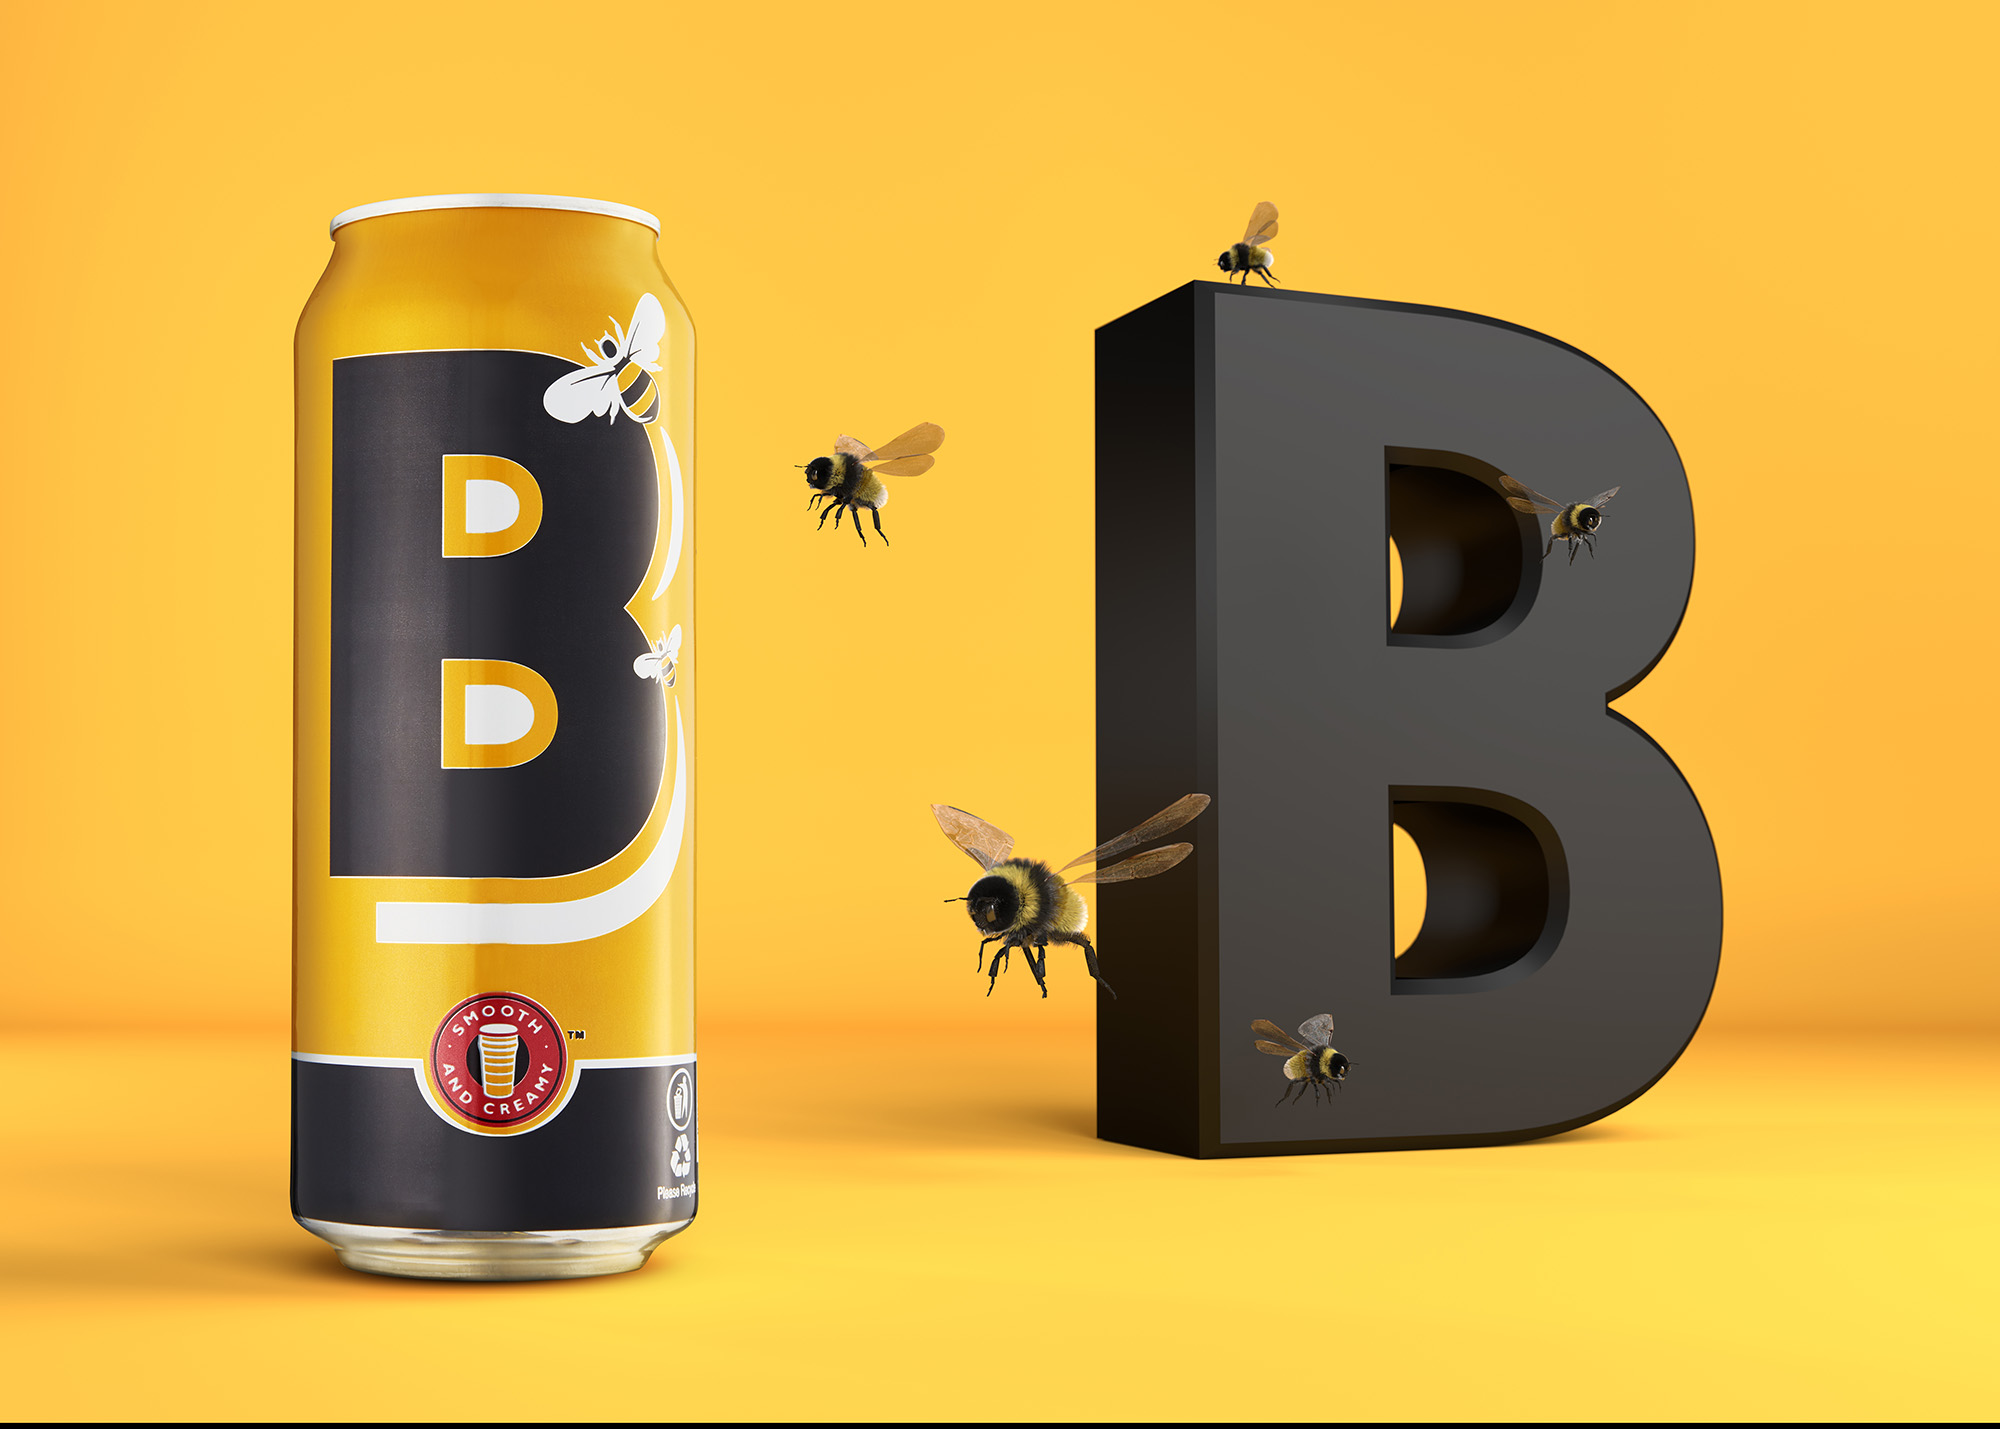 Ian Knaggs Commercial Product Photographer - Boddingtons & Bees